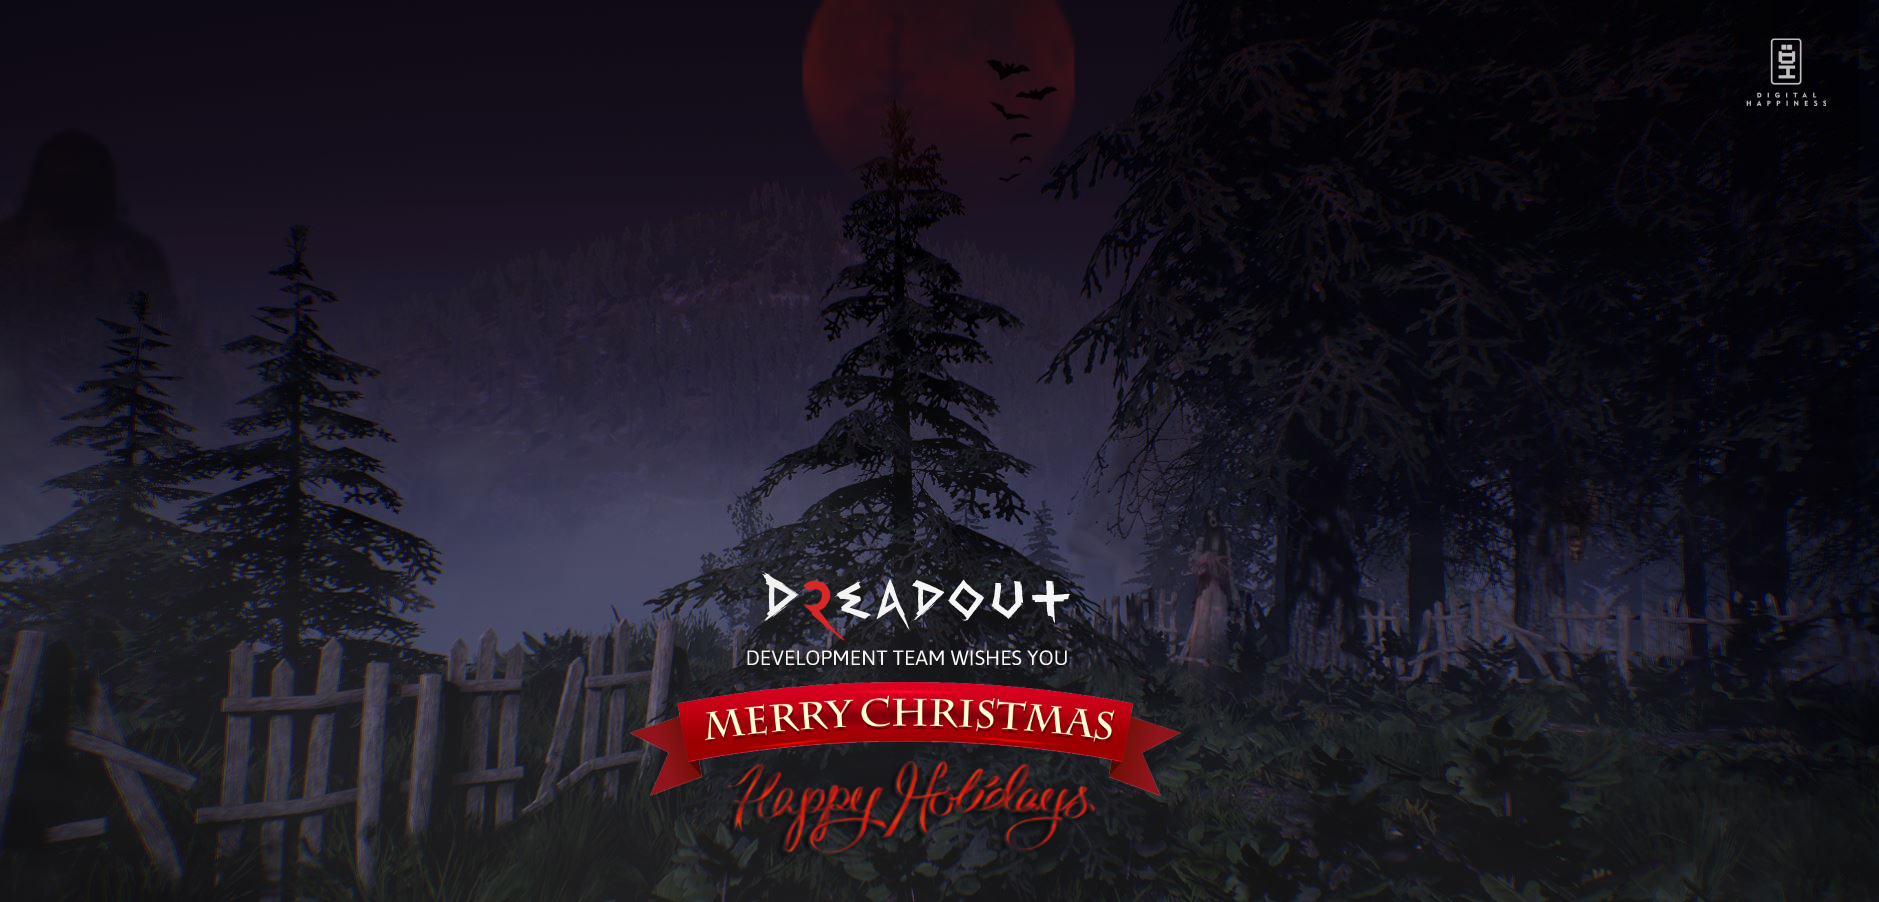 Happy Holidays and Merry Christmas 2019!